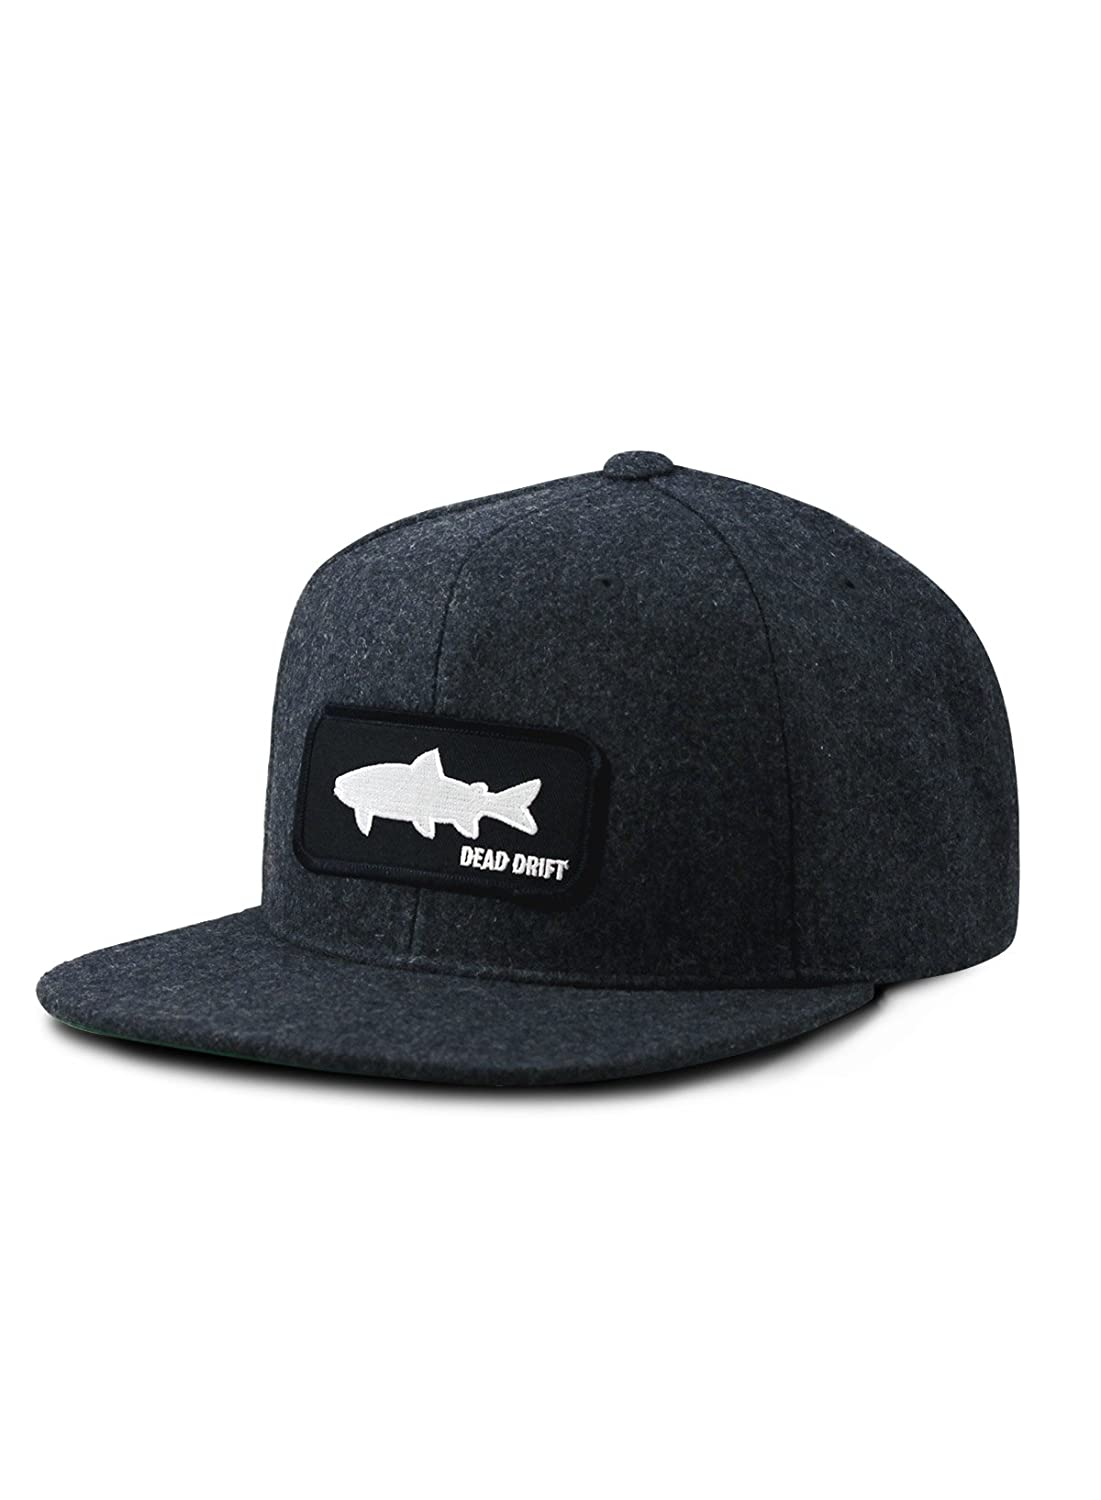 3f4e434a115 Dead Drift Fly Fishing Hat Shadow Wool Flat Bill Snap Back (Charcoal) at  Amazon Men s Clothing store